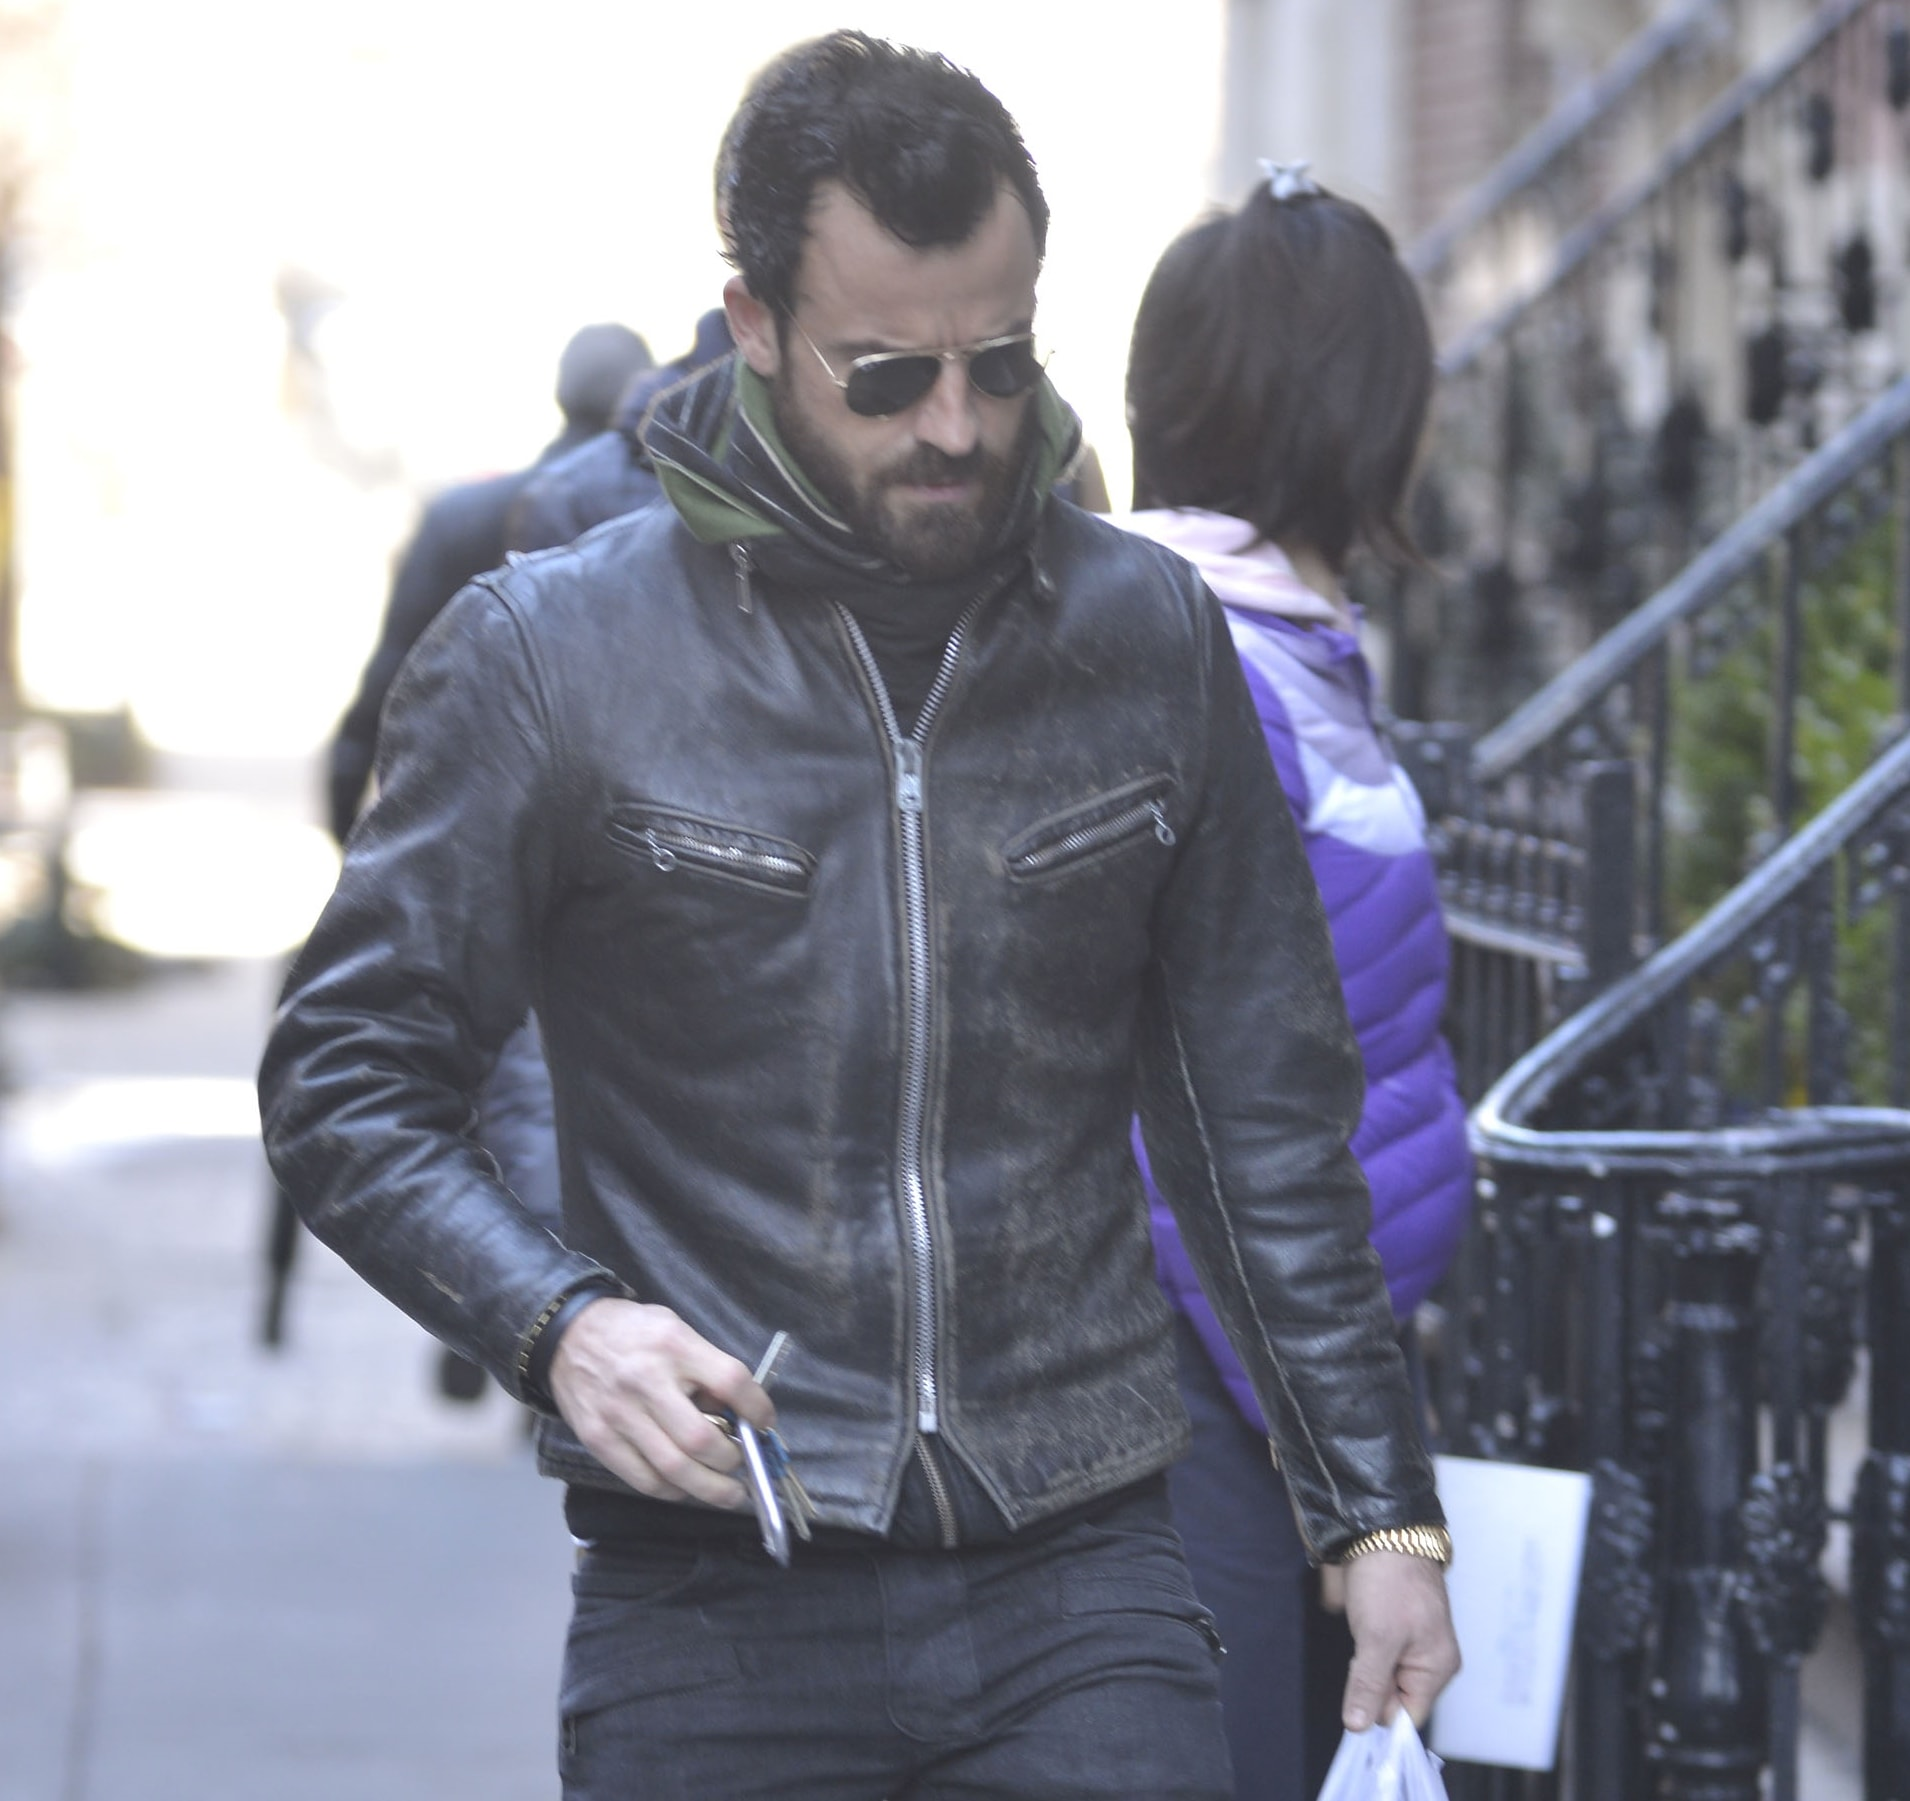 Justin Theroux shows how to look rugged cool in a leather jacket